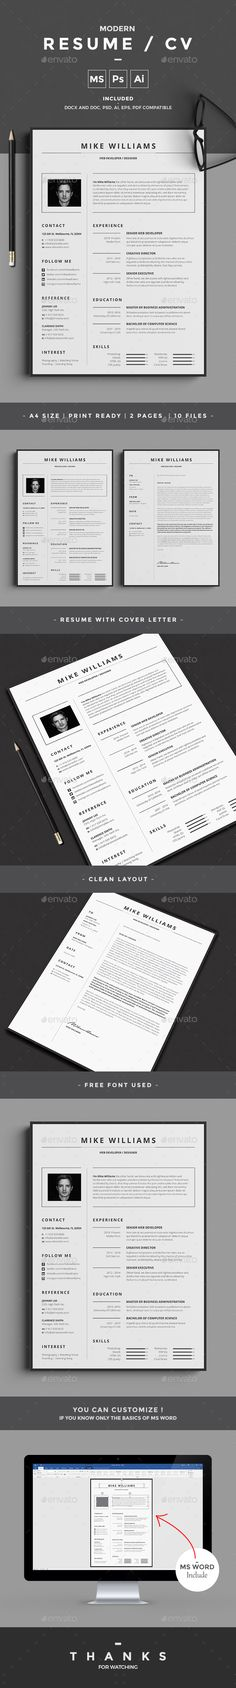 Love this simple, clean resume design! For more resume design inspirations click here: www.pinterest.com/sheppardaaron/-design-resumes/ Creative Resume Design, Resume Style, Resume Design, Curriculum Vitae, CV, Resume Template, Resumes, Resume Format ... #resume #resumedesign #creative #custom #cv #coverletter #design